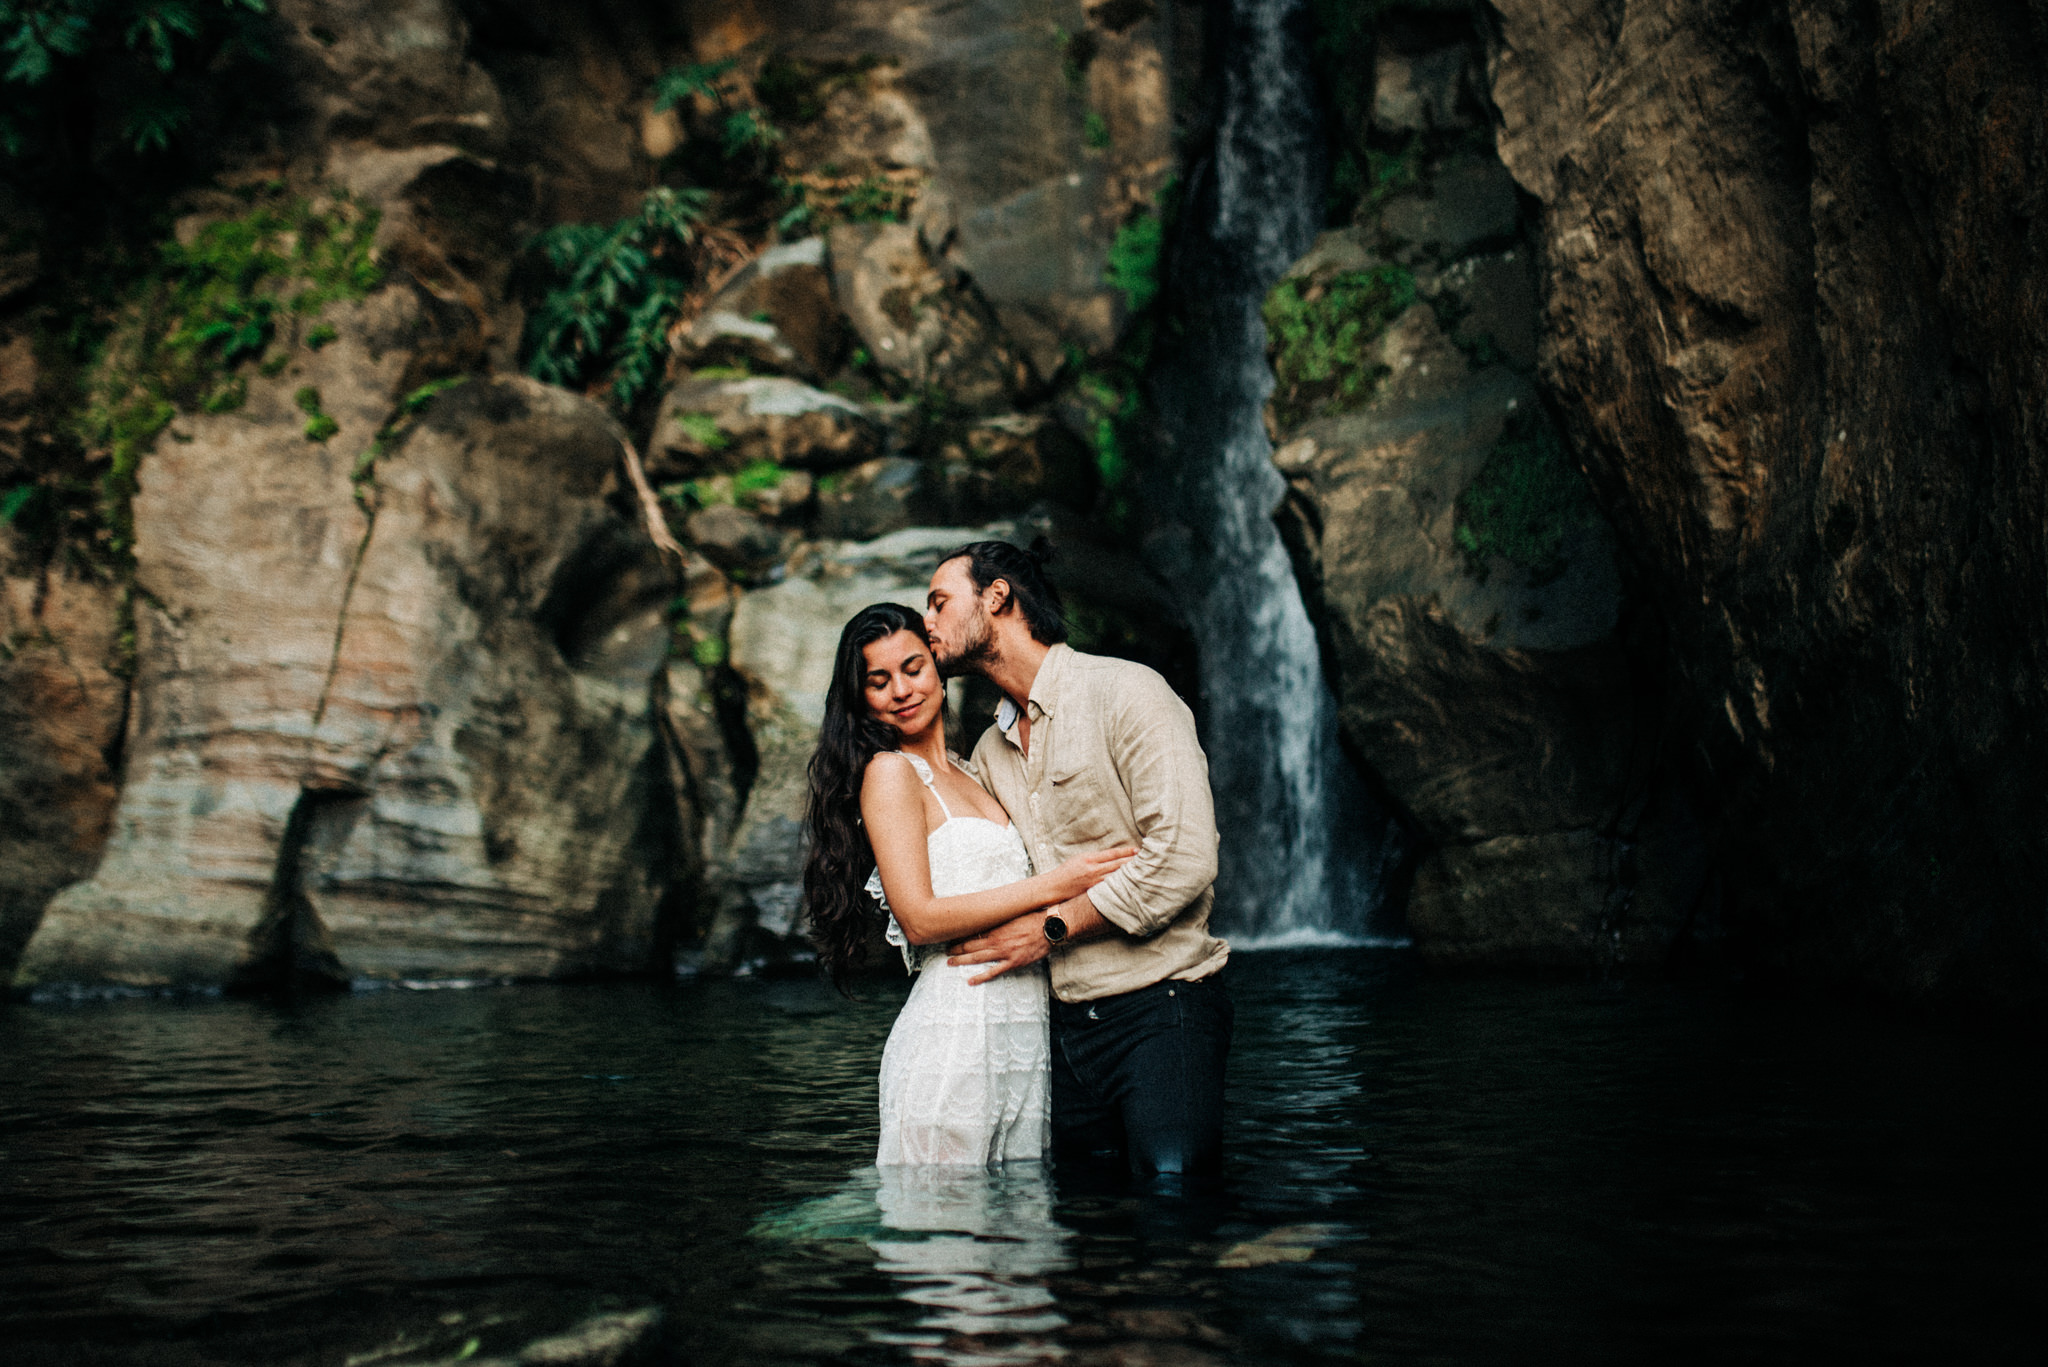 twyla jones photography - portugal azores waterfall couples engagement elopement -40.jpg